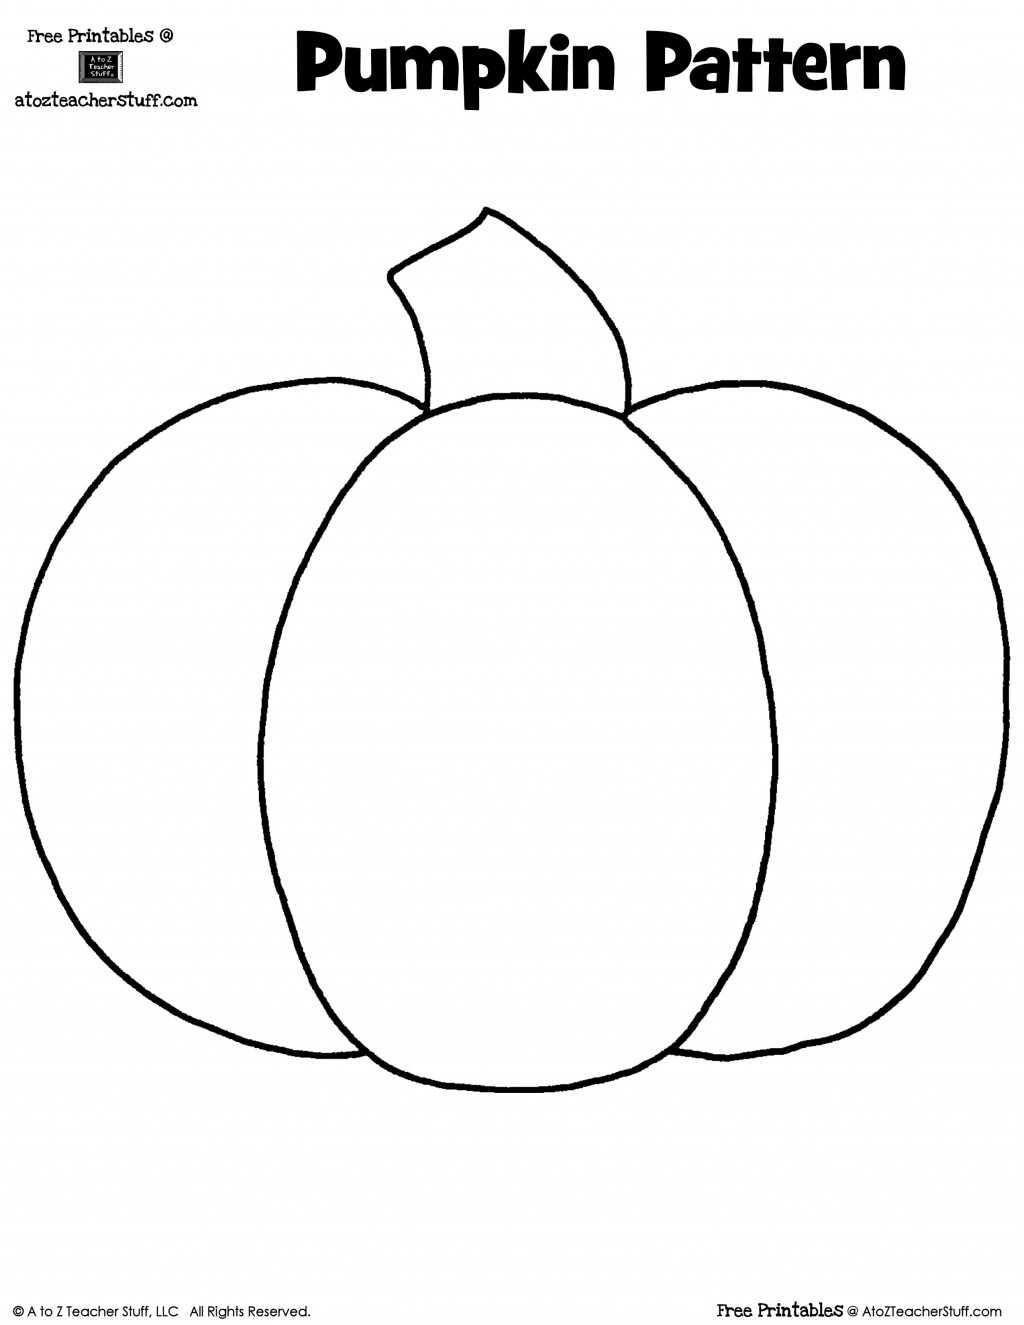 005 Frightening Free Pumpkin Template Printable High Def  Easy Carving Scary StencilLarge